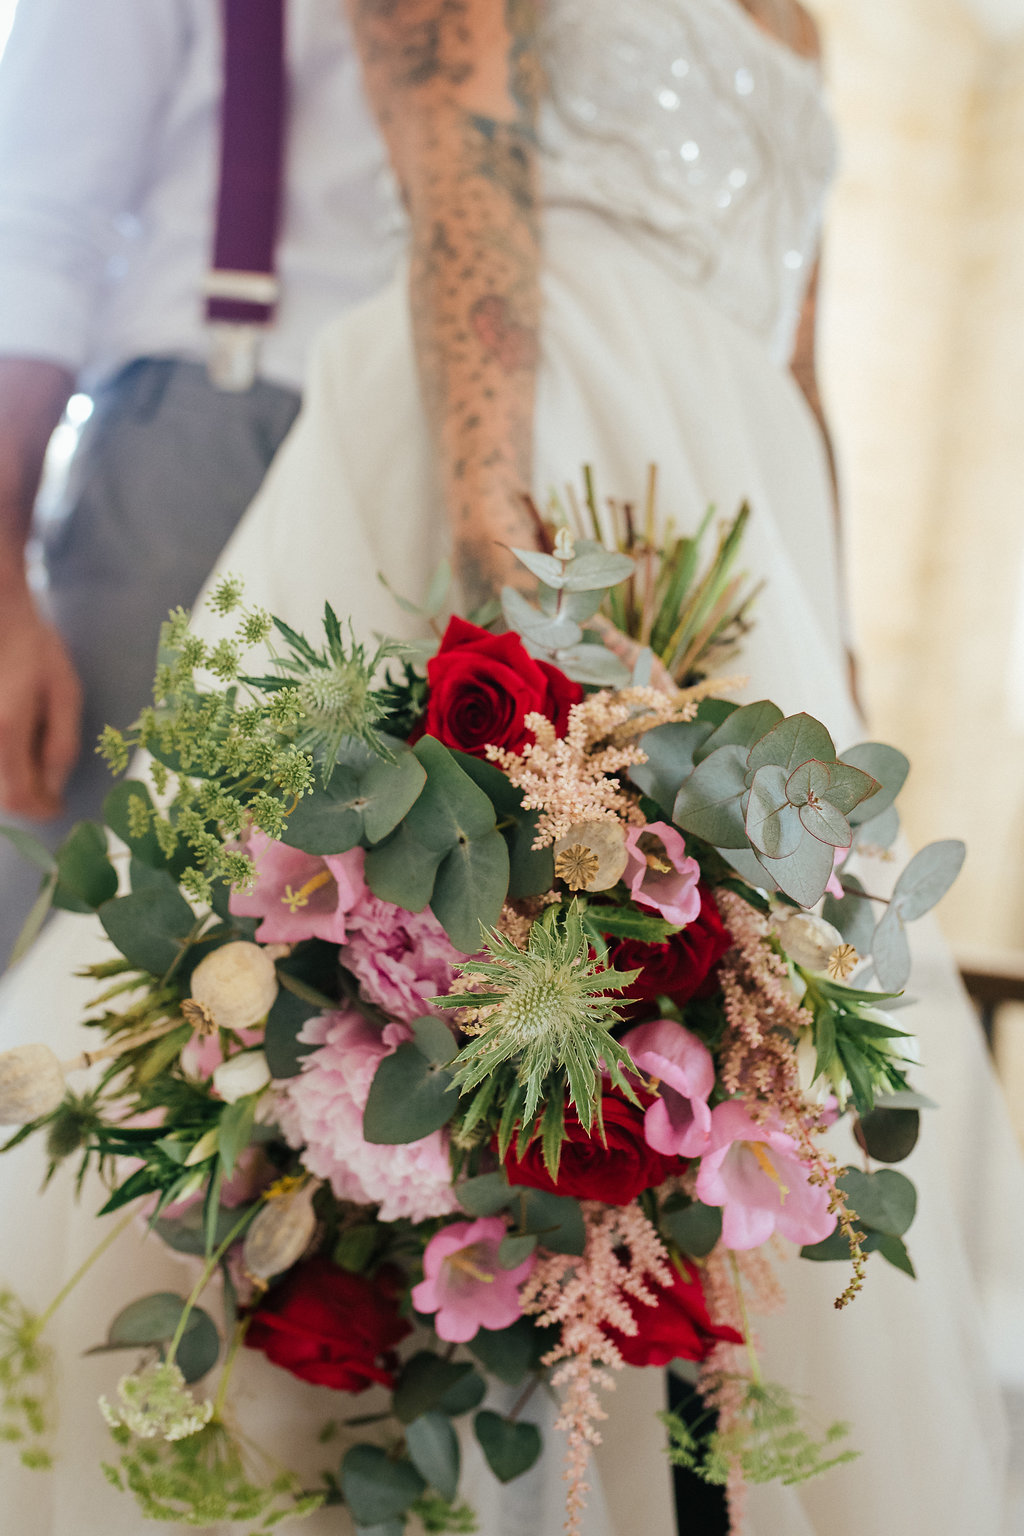 Hand-tied wedding bouquet in red and pink with foliage